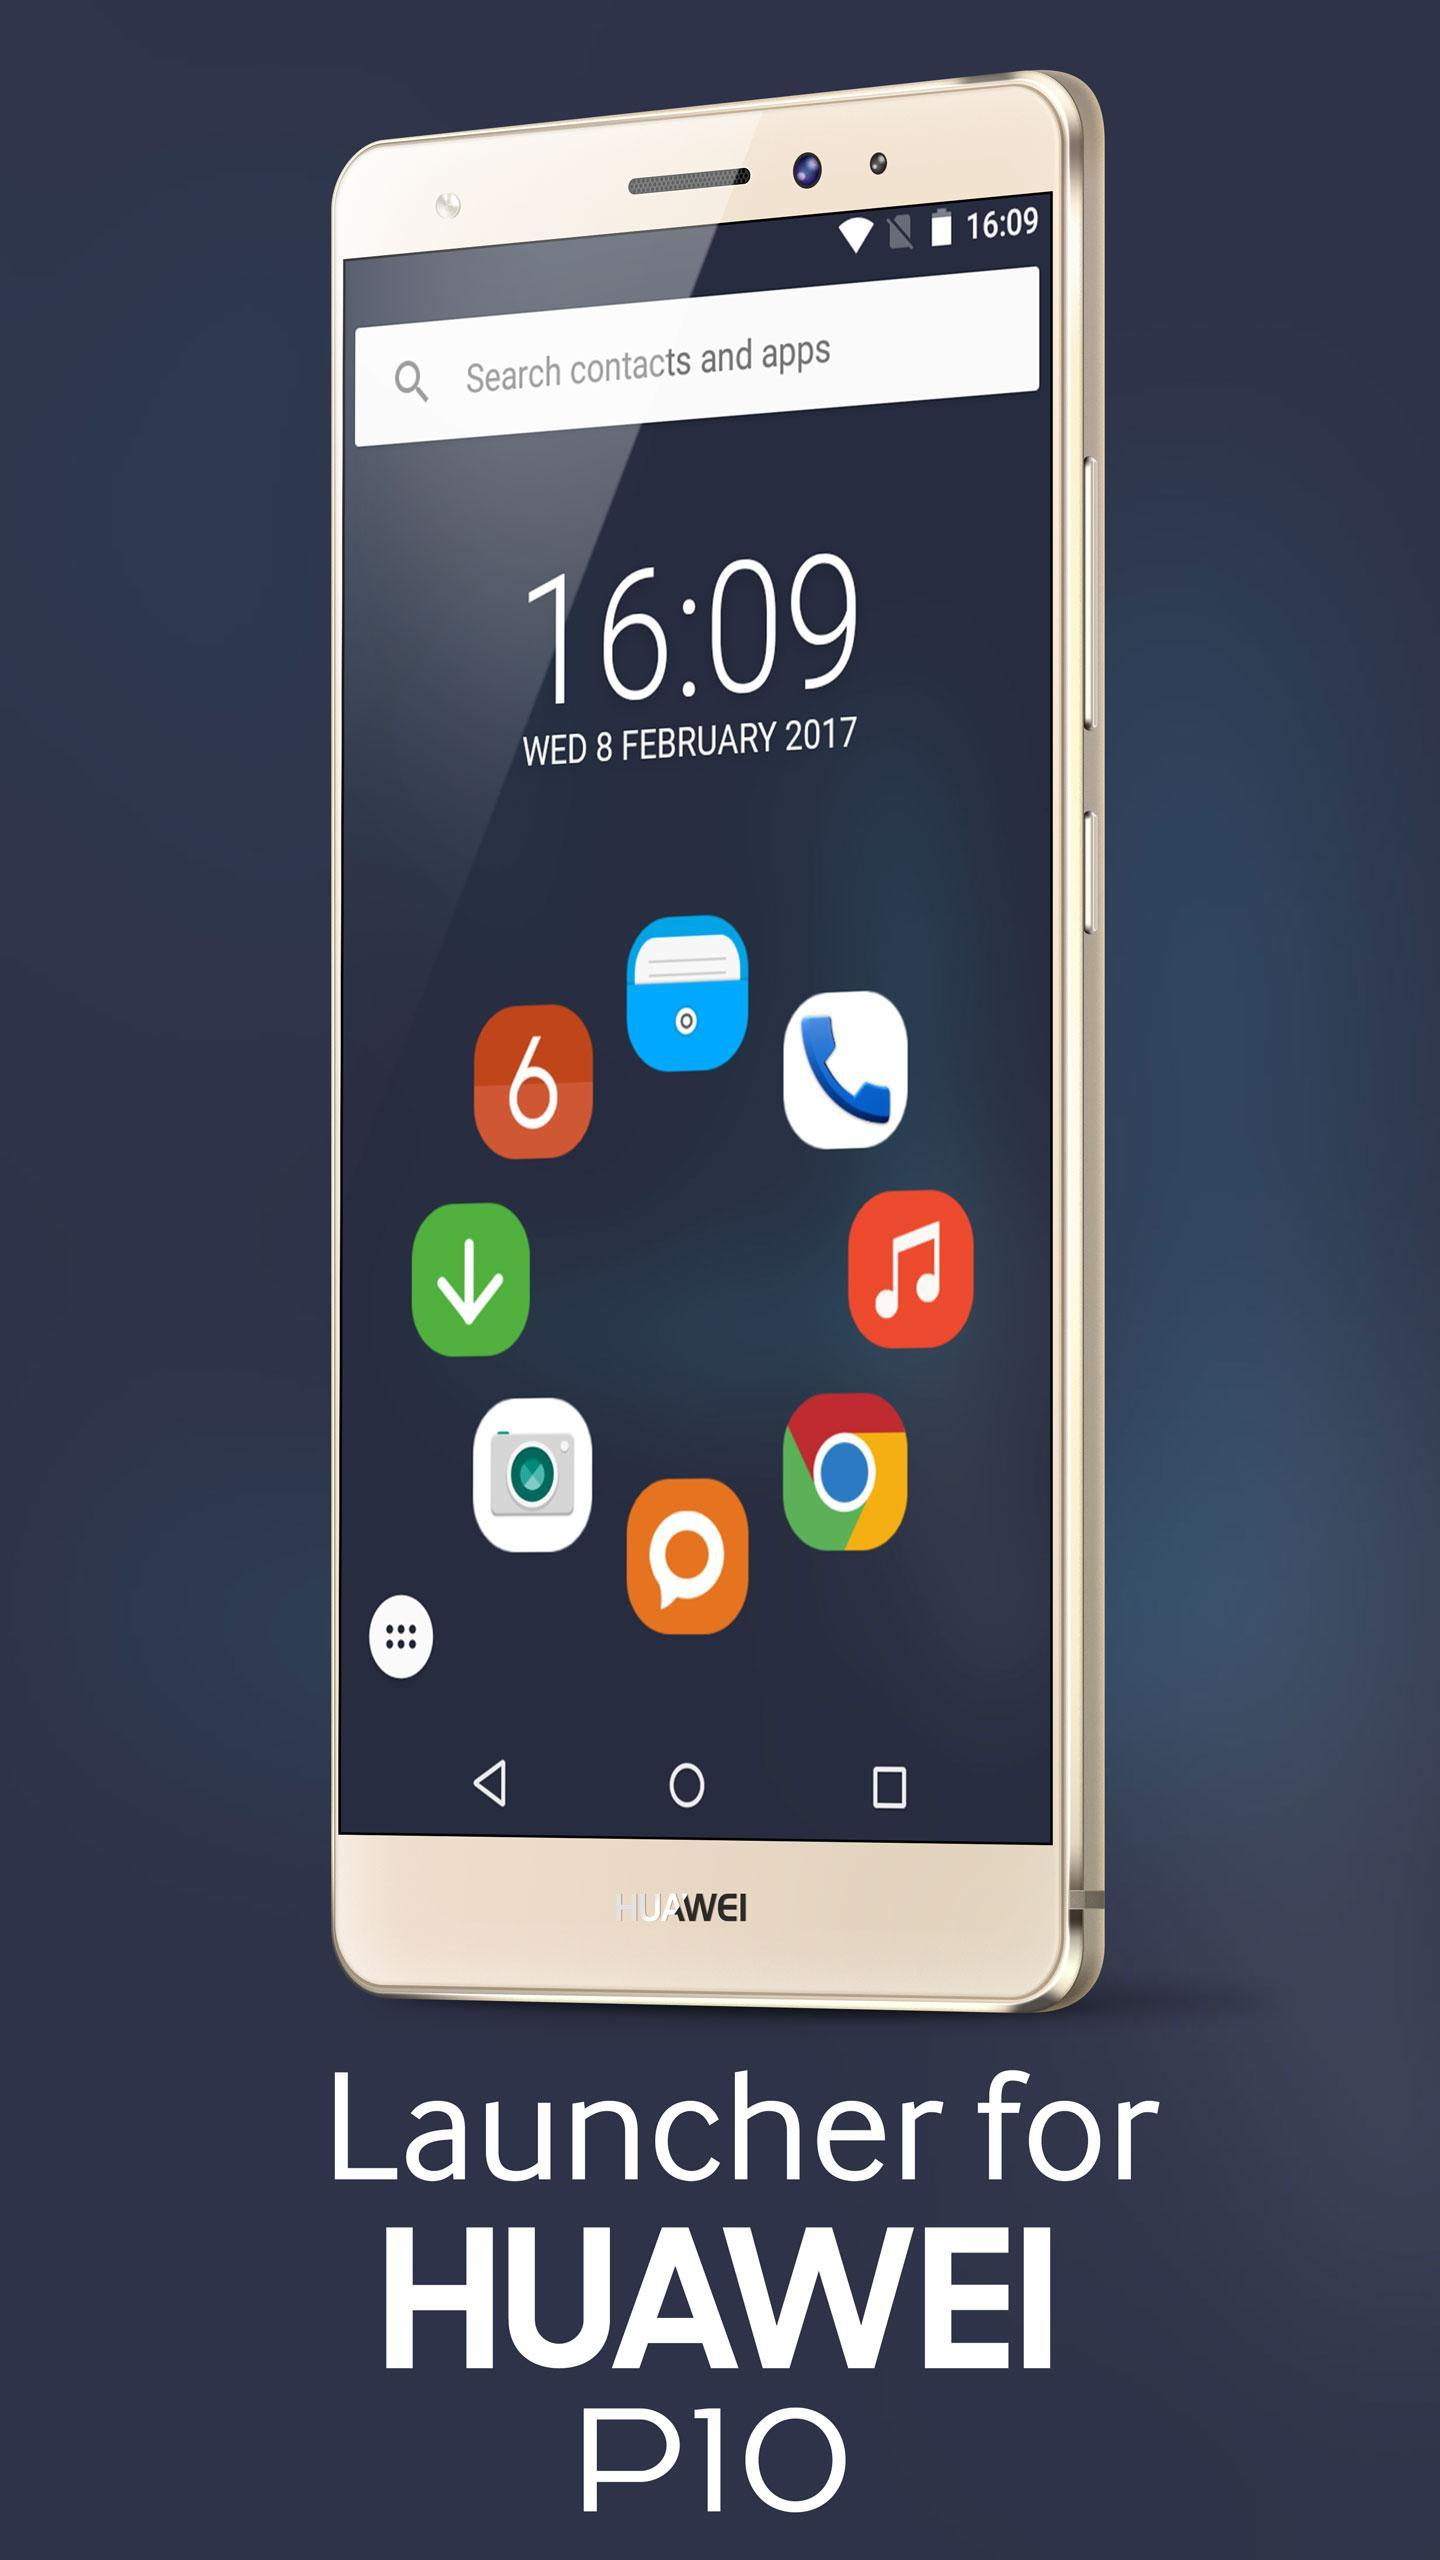 Launcher for Huawei P10 for Android - APK Download